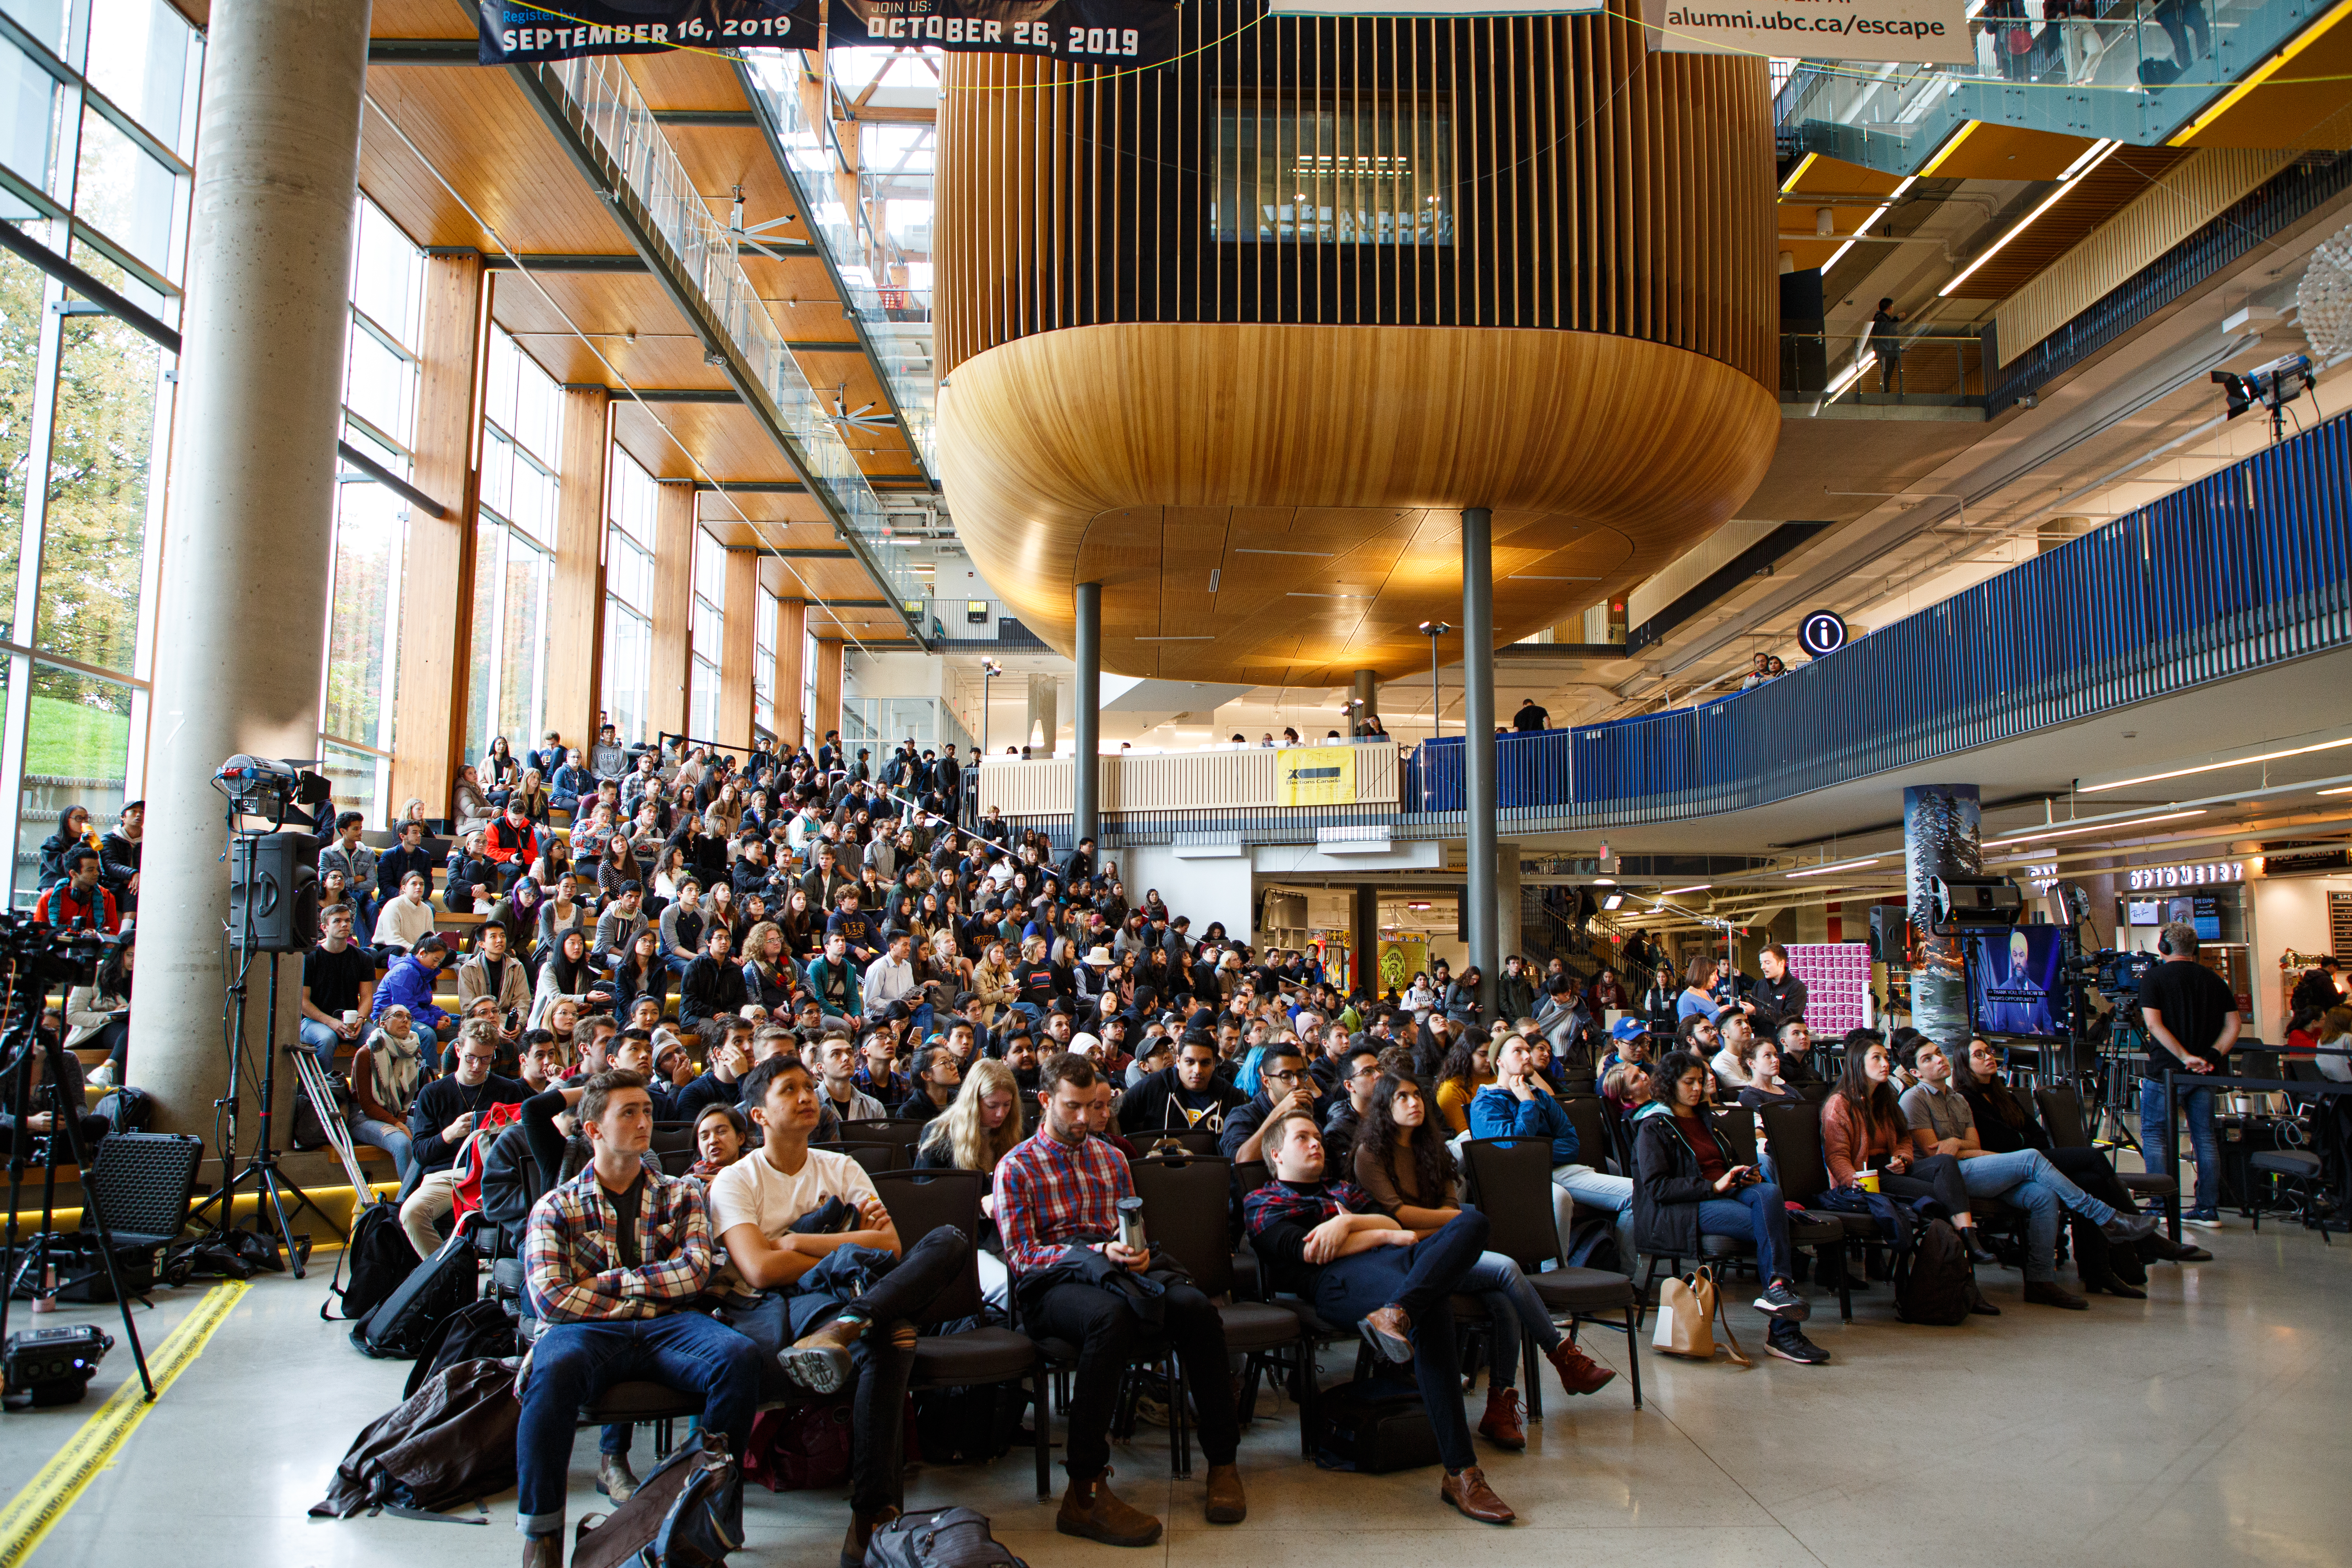 The biggest issues on students' minds were the climate crisis, Indigenous rights as well as economic and social inequality.